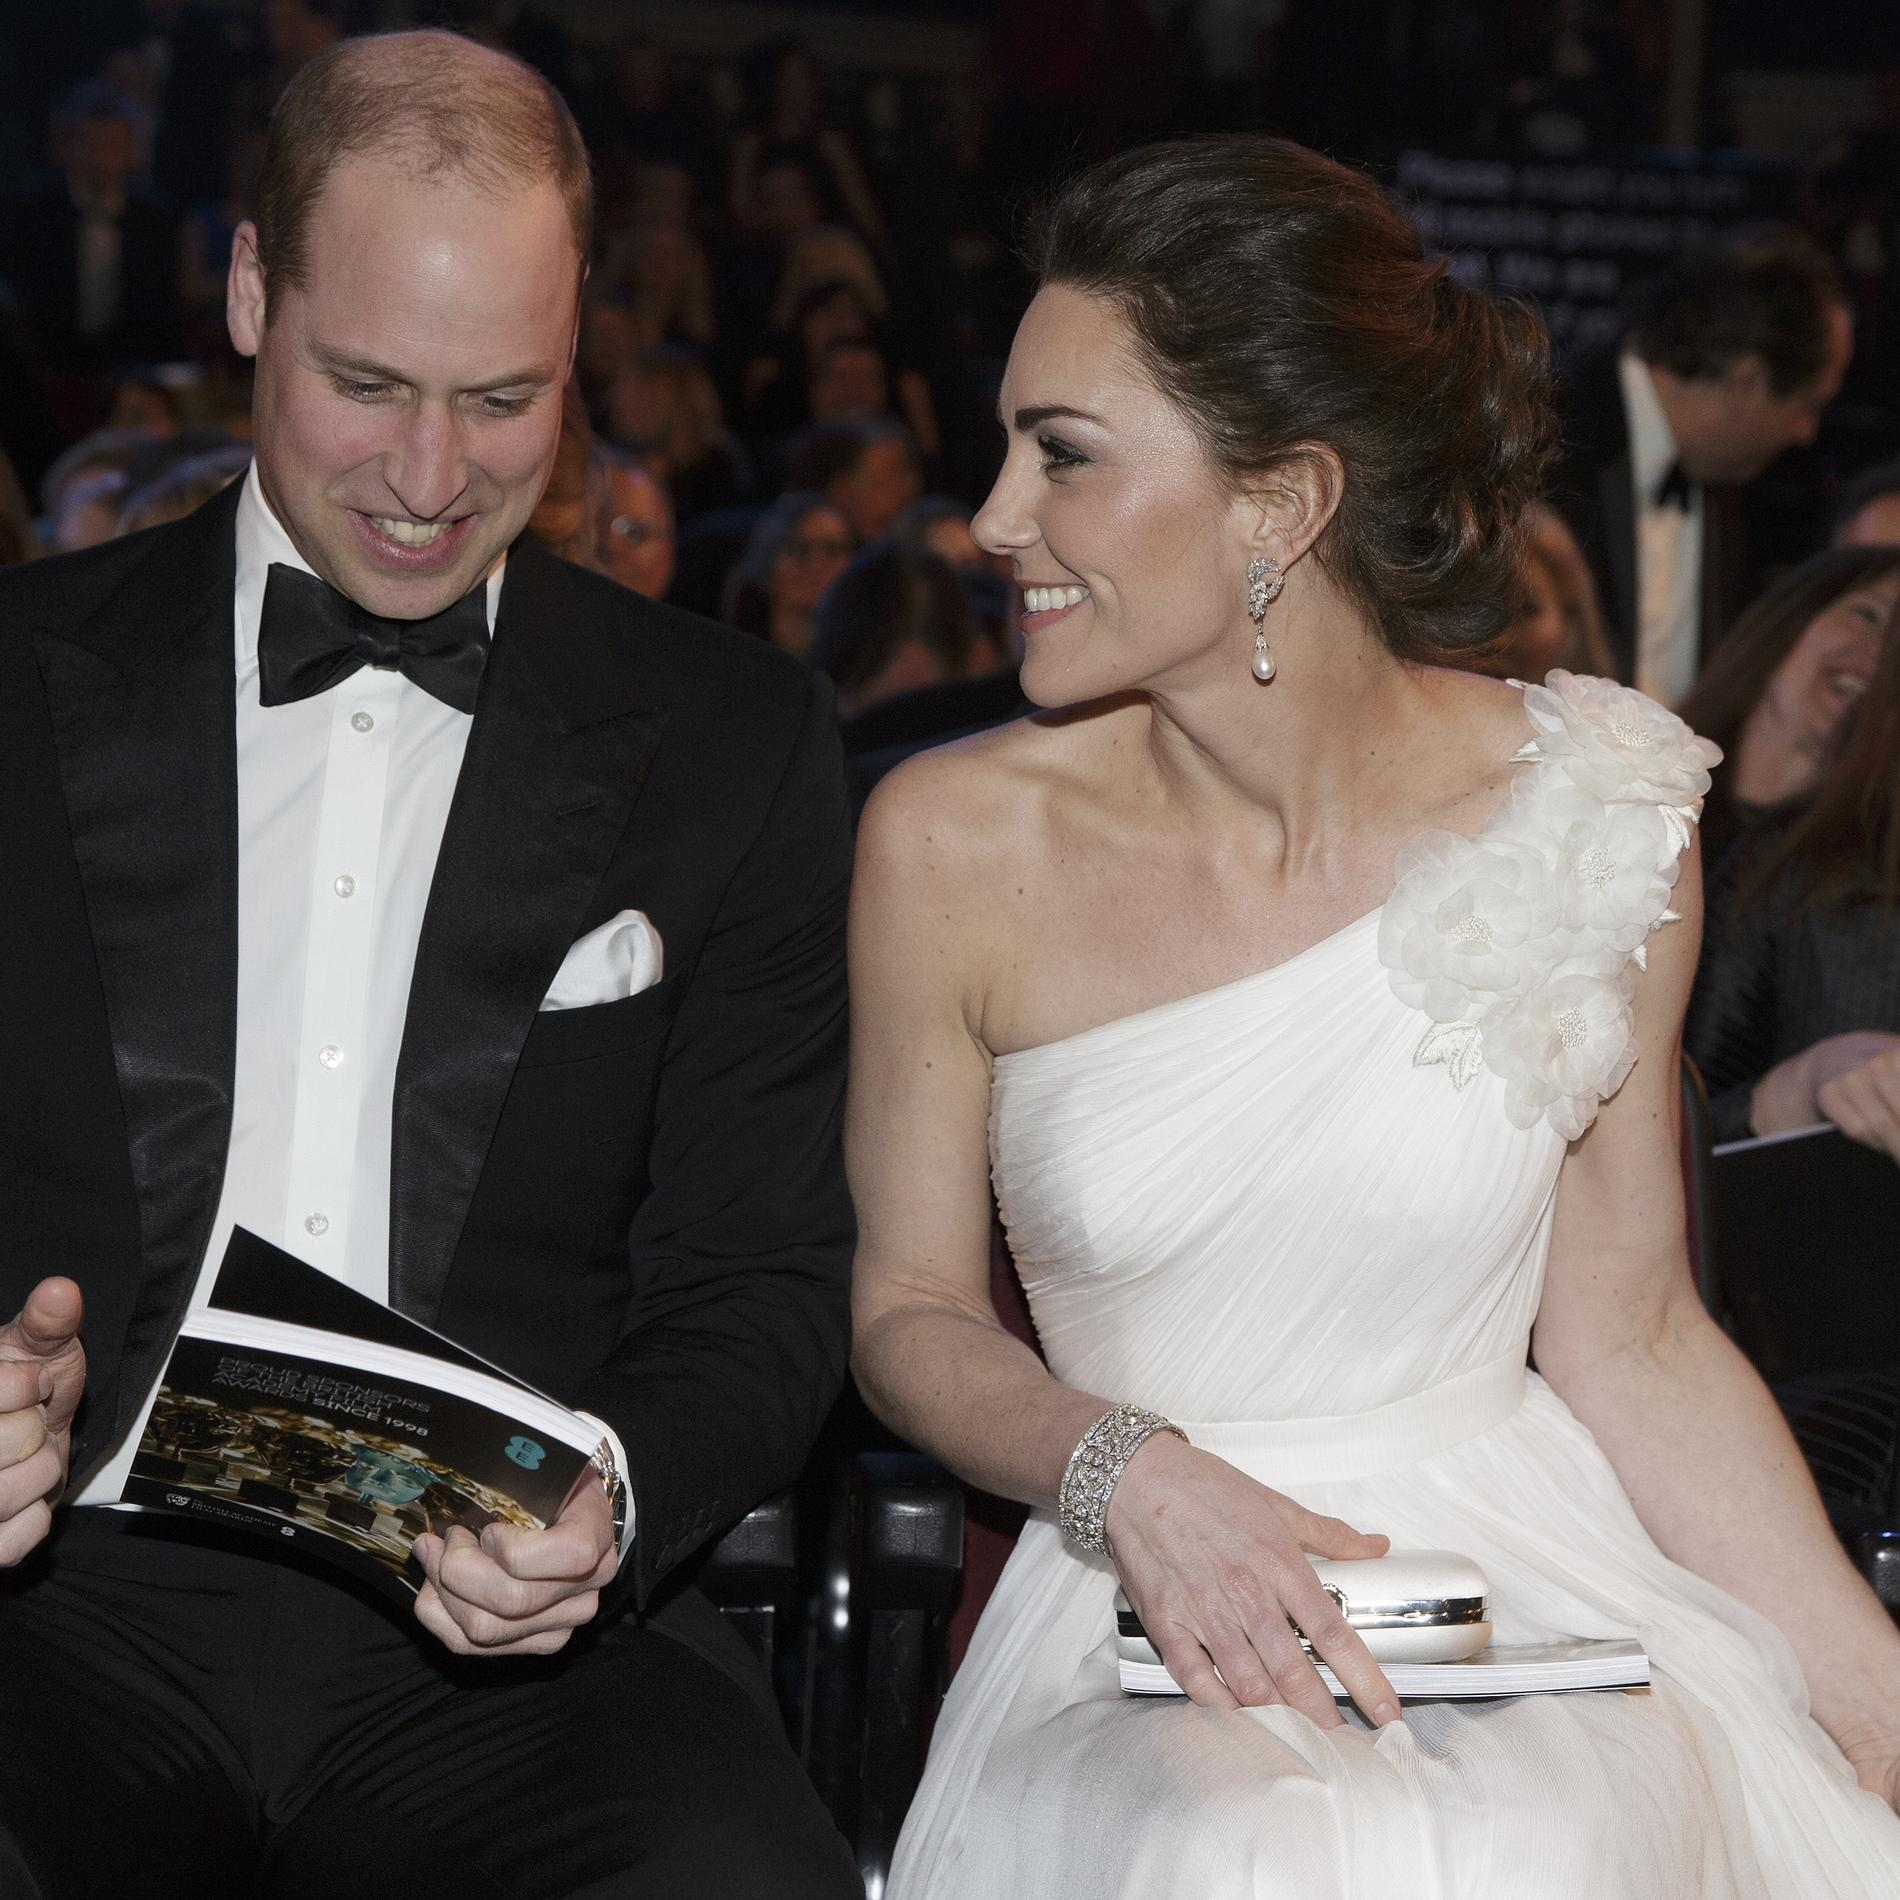 Kate Middleton joue les princesses sur le tapis rouge des BAFTAs 2019 - Kate Middleton et le prince William